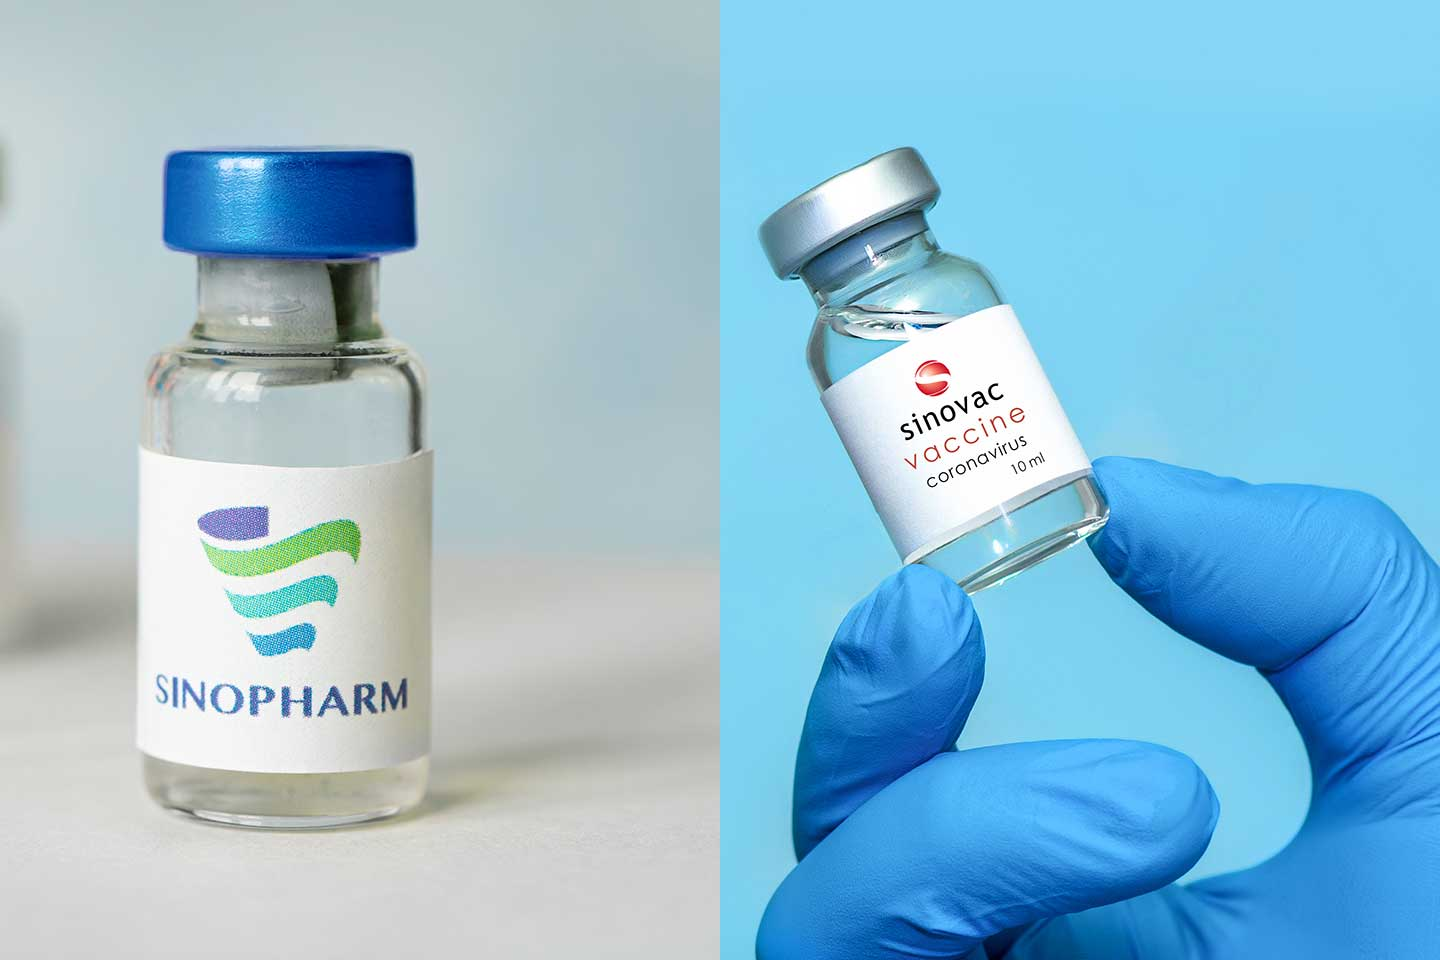 Gavi signs agreements with Sinopharm and Sinovac for immediate supply to  COVAX   Gavi, the Vaccine Alliance